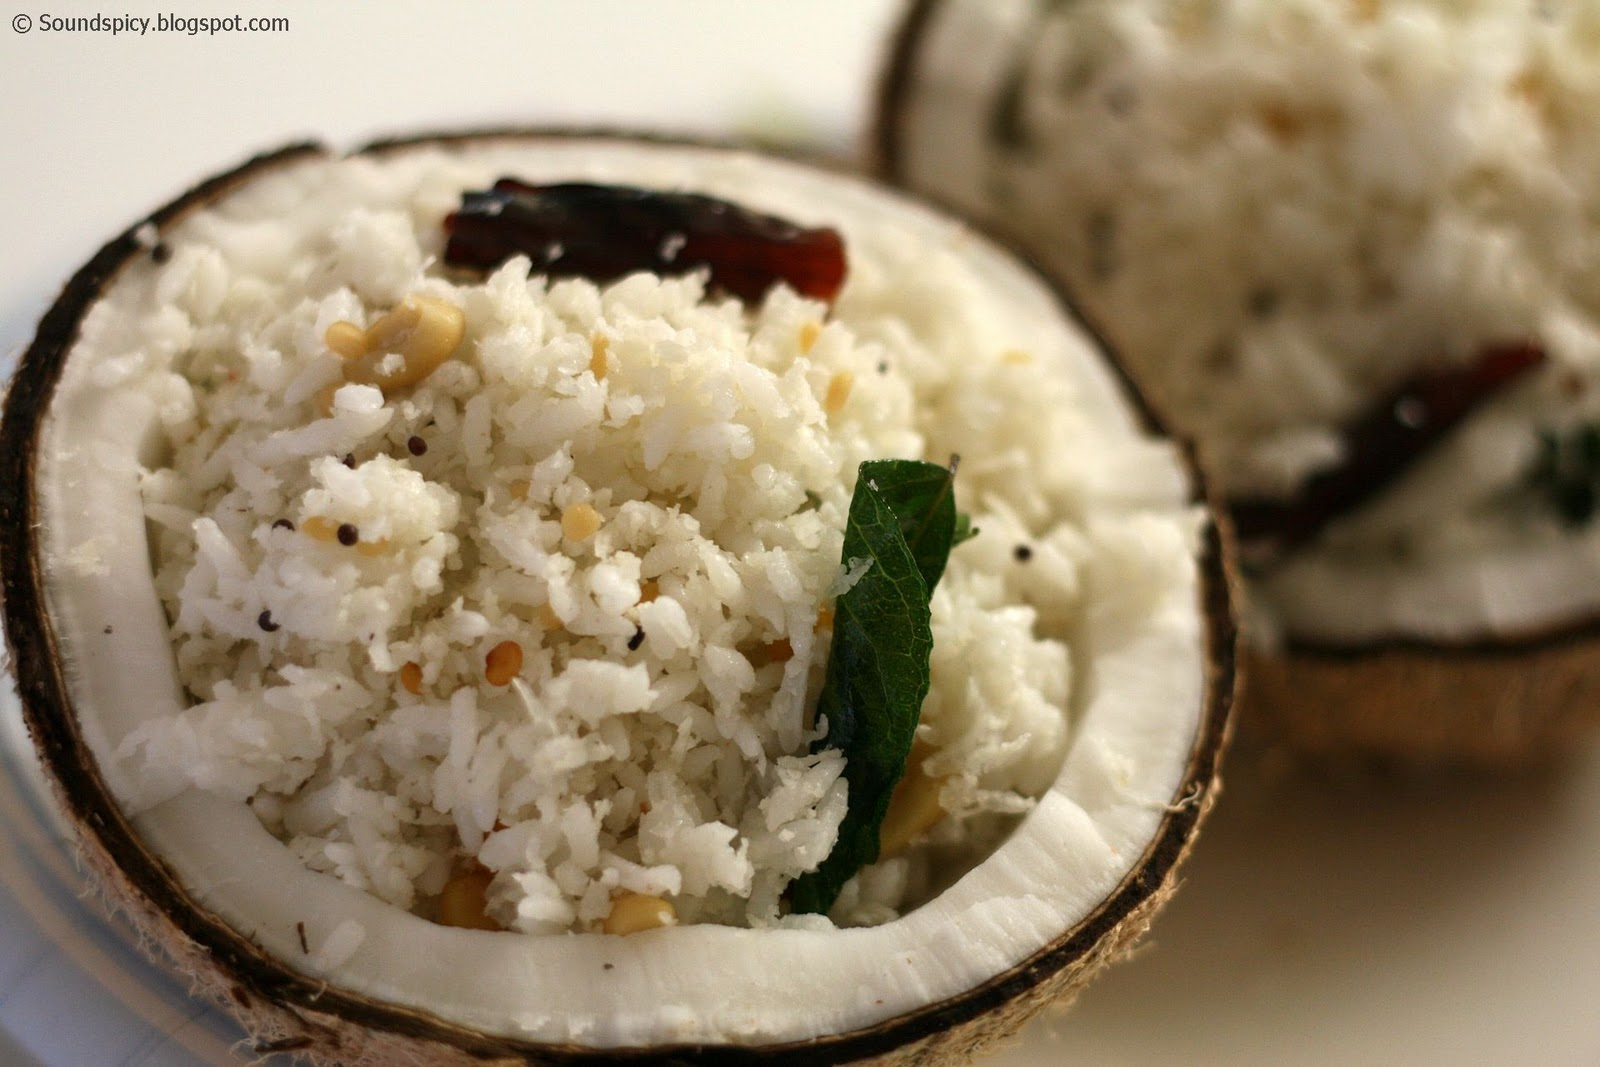 Coconut rice | Sound'spicy